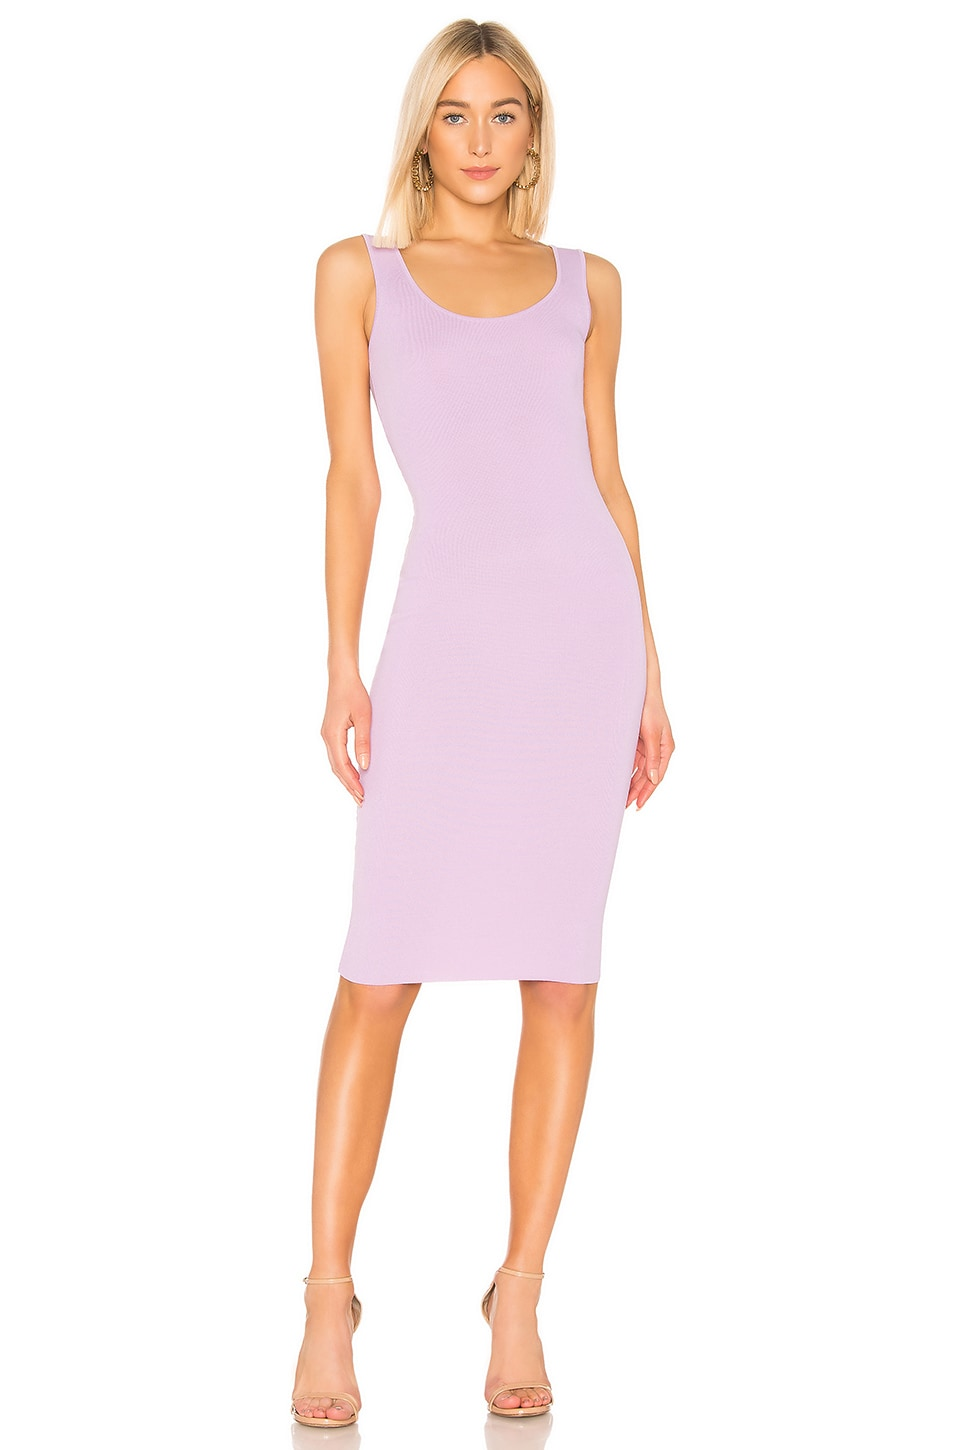 superdown Kaila Midi Dress in Lavender